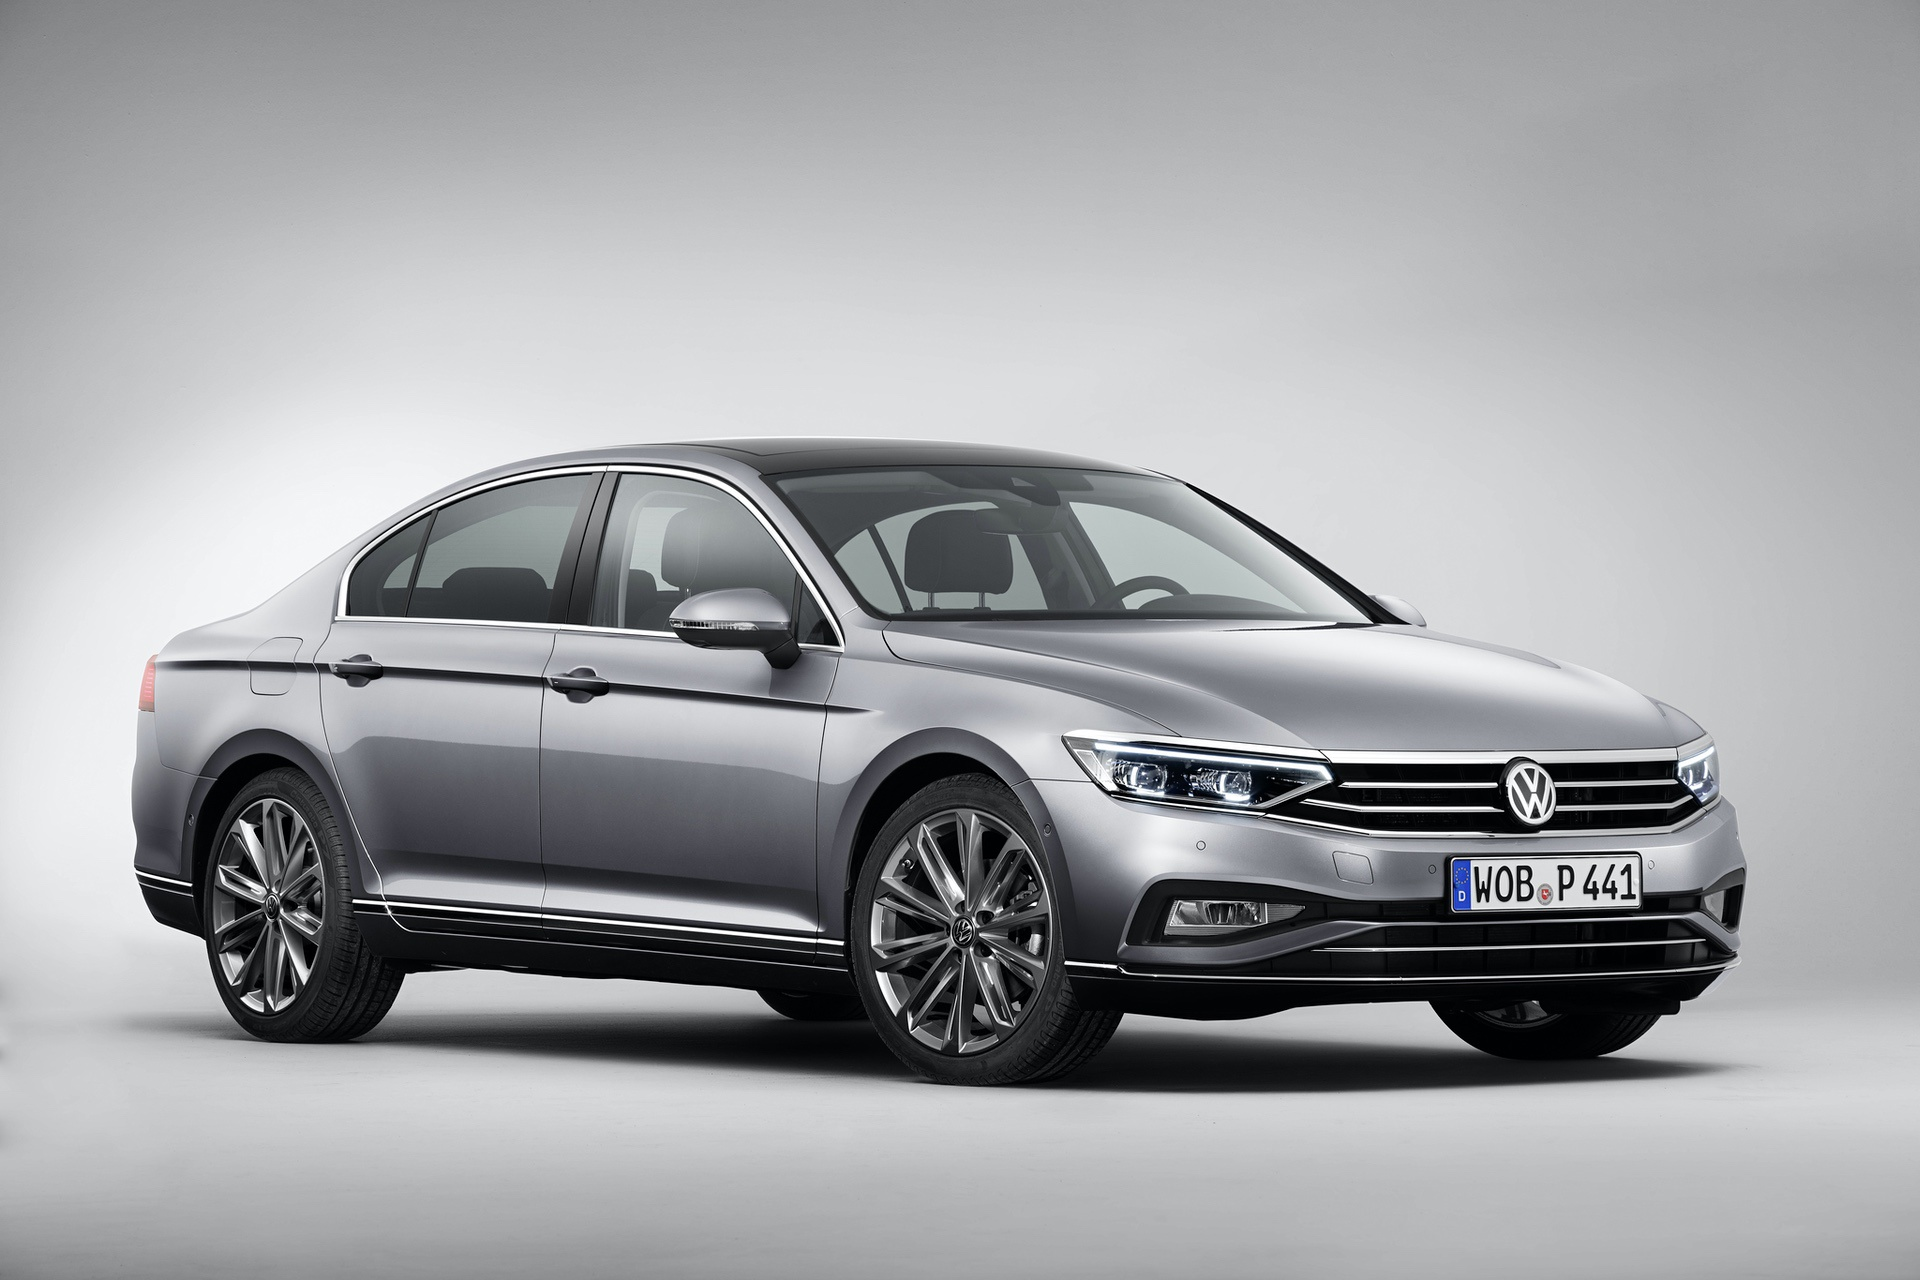 The new Volkswagen Passat